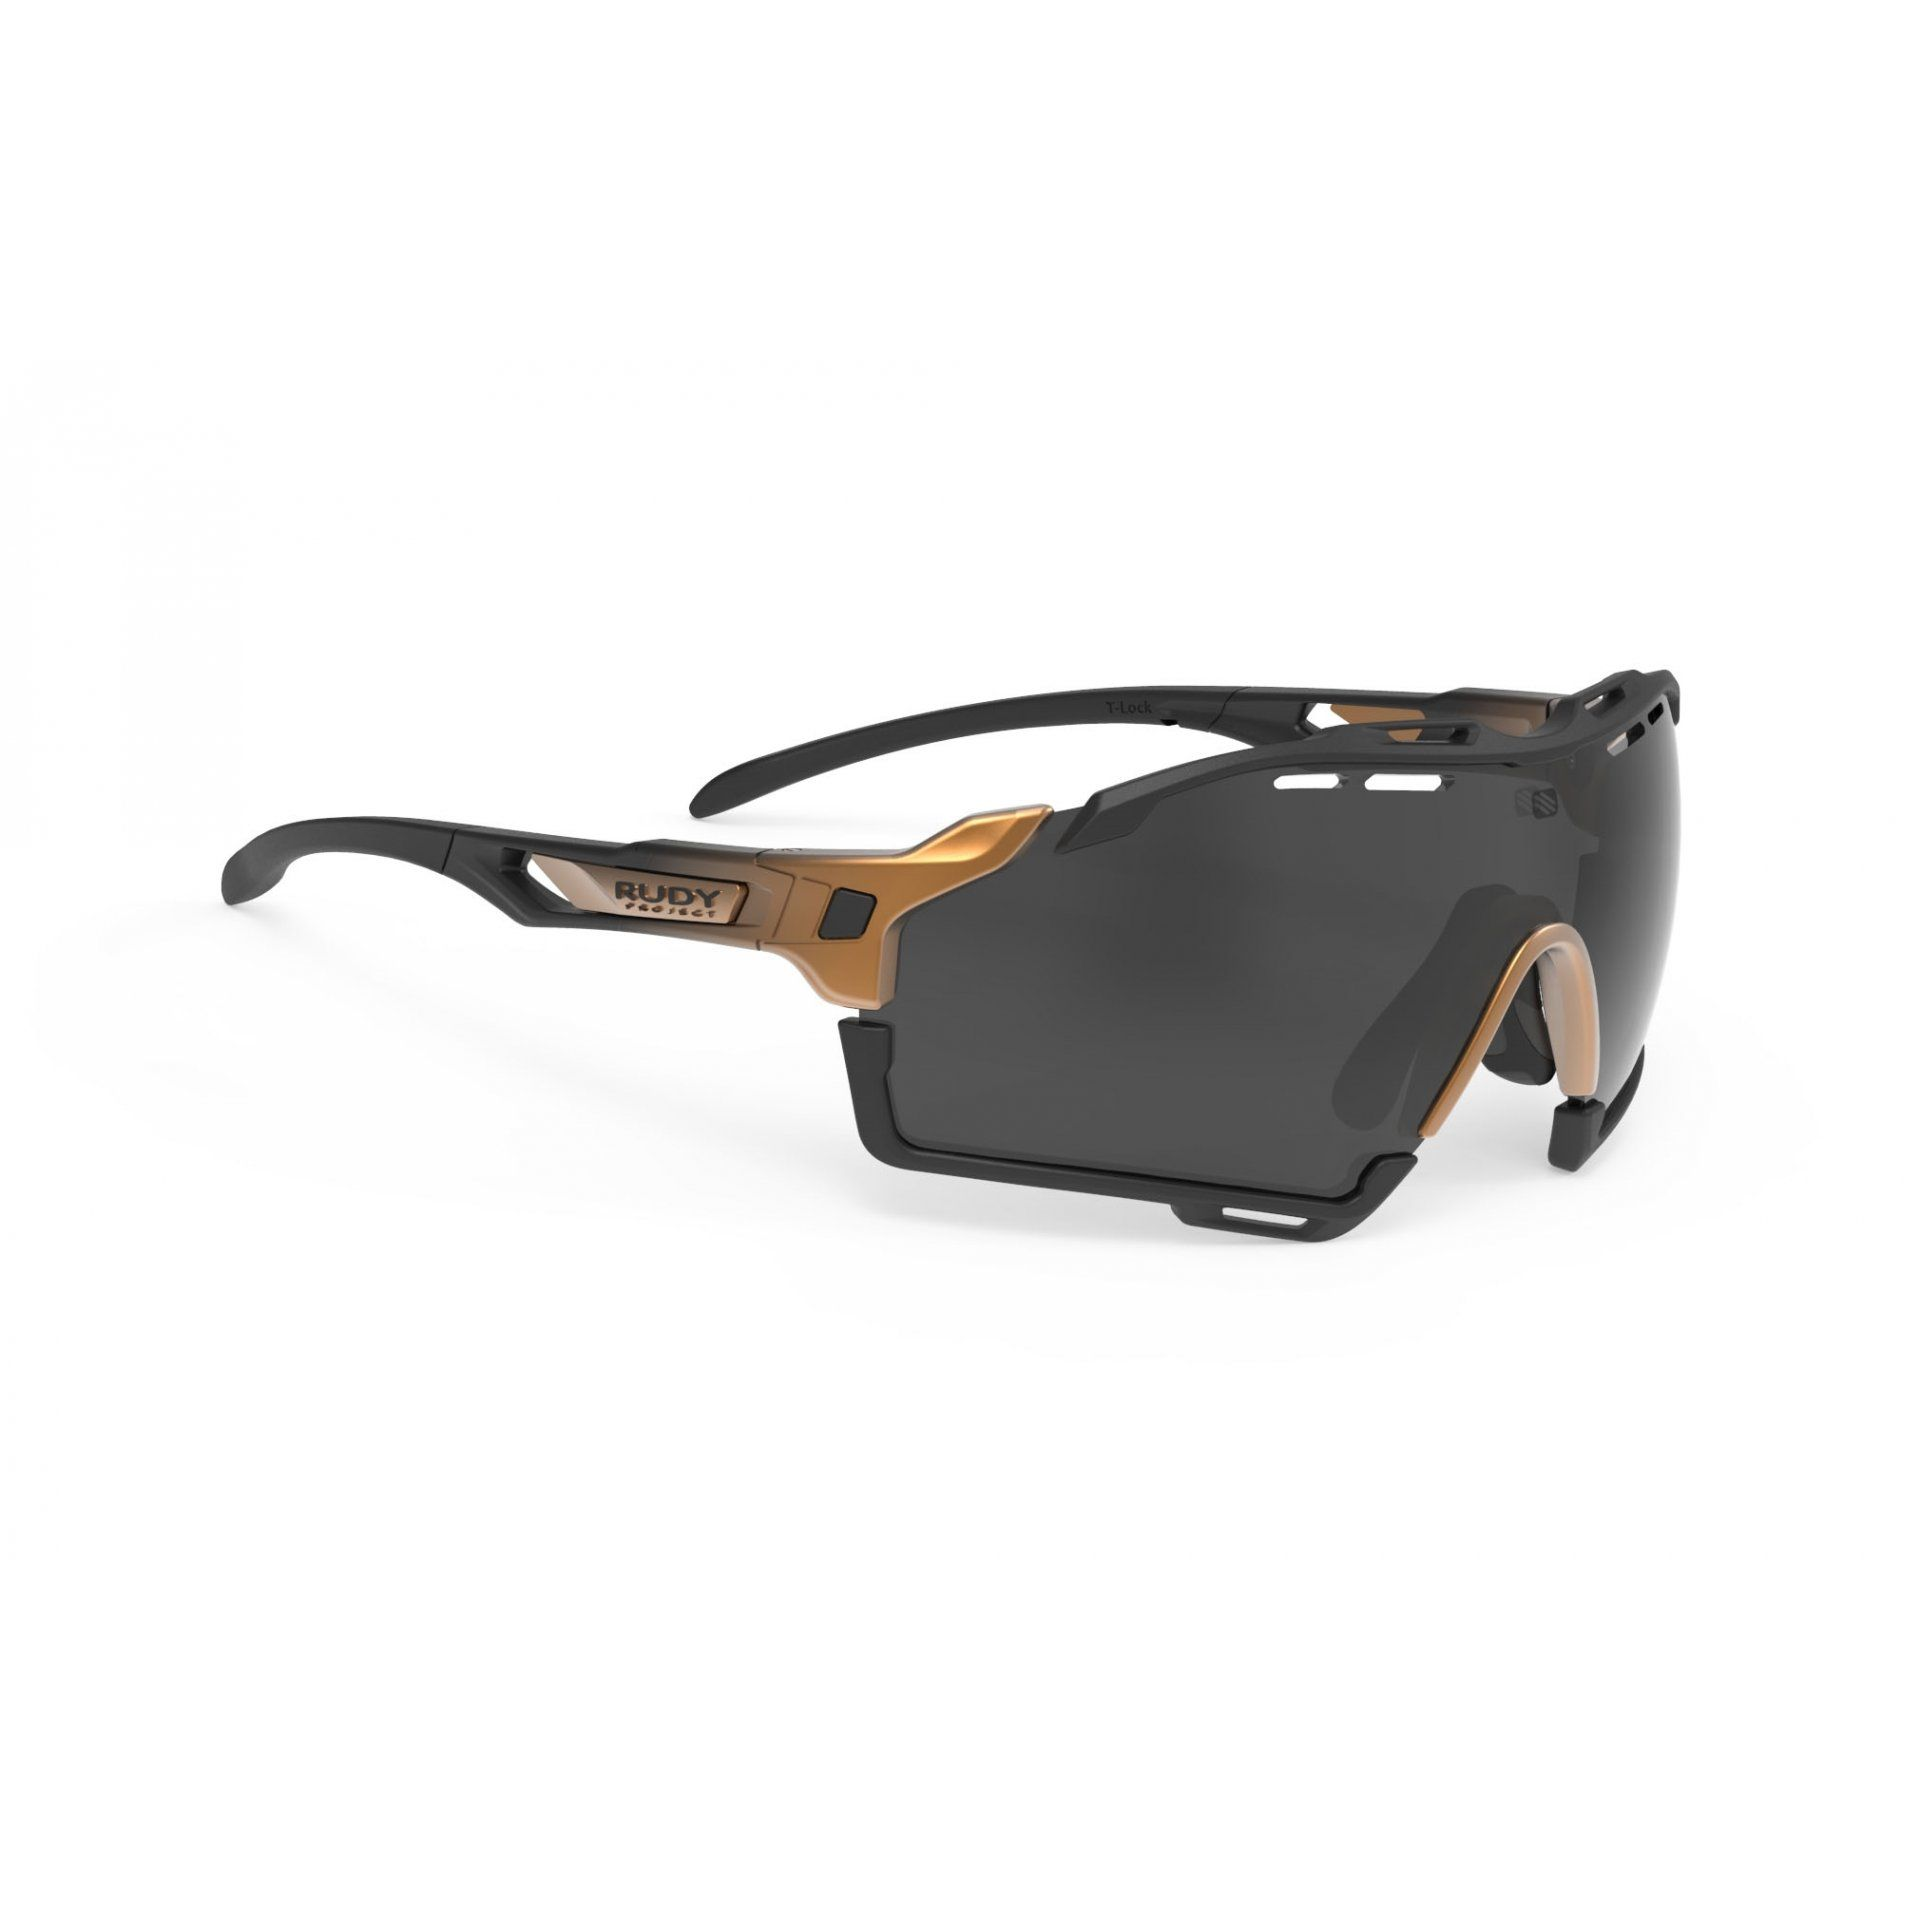 OKULARY RUDY PROJECT CUTLINE BRONZE FADE|BLACK MATTE+SMOKE BLACK 1